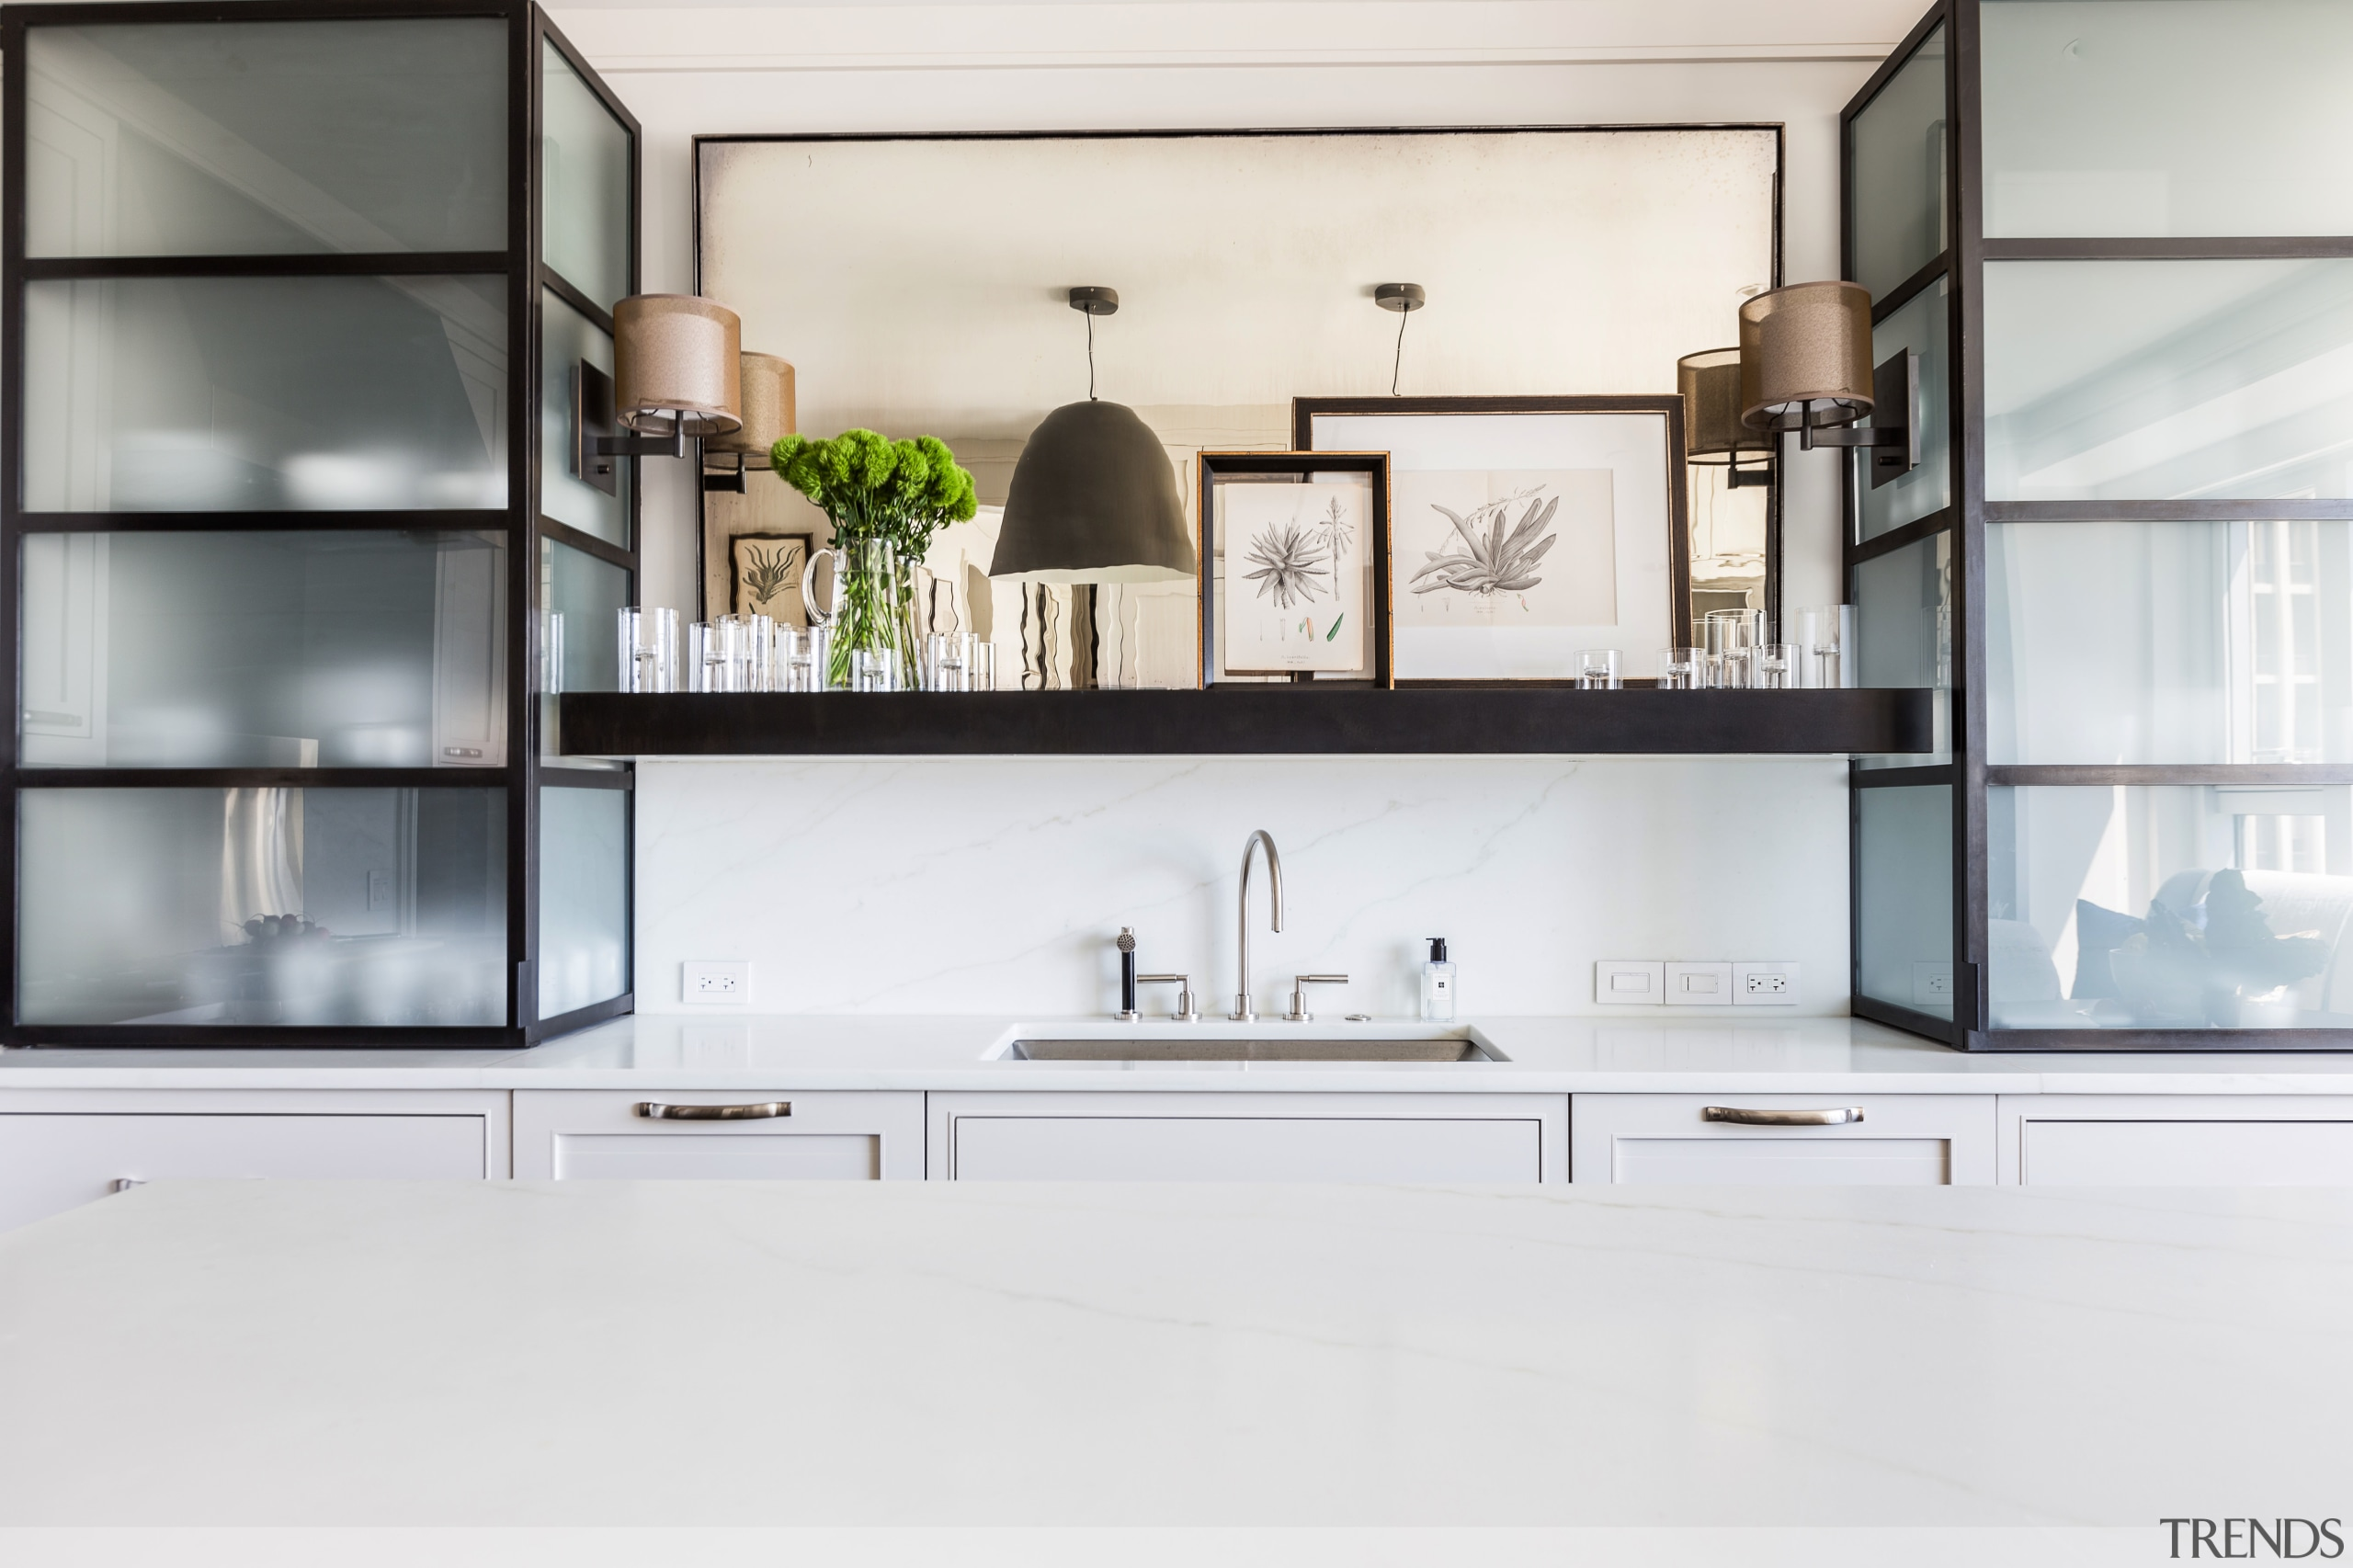 Translucent glass and steel cabinets evoke Chicagos skyscrapers countertop, cuisine classique, furniture, interior design, kitchen, product design, shelf, shelving, white